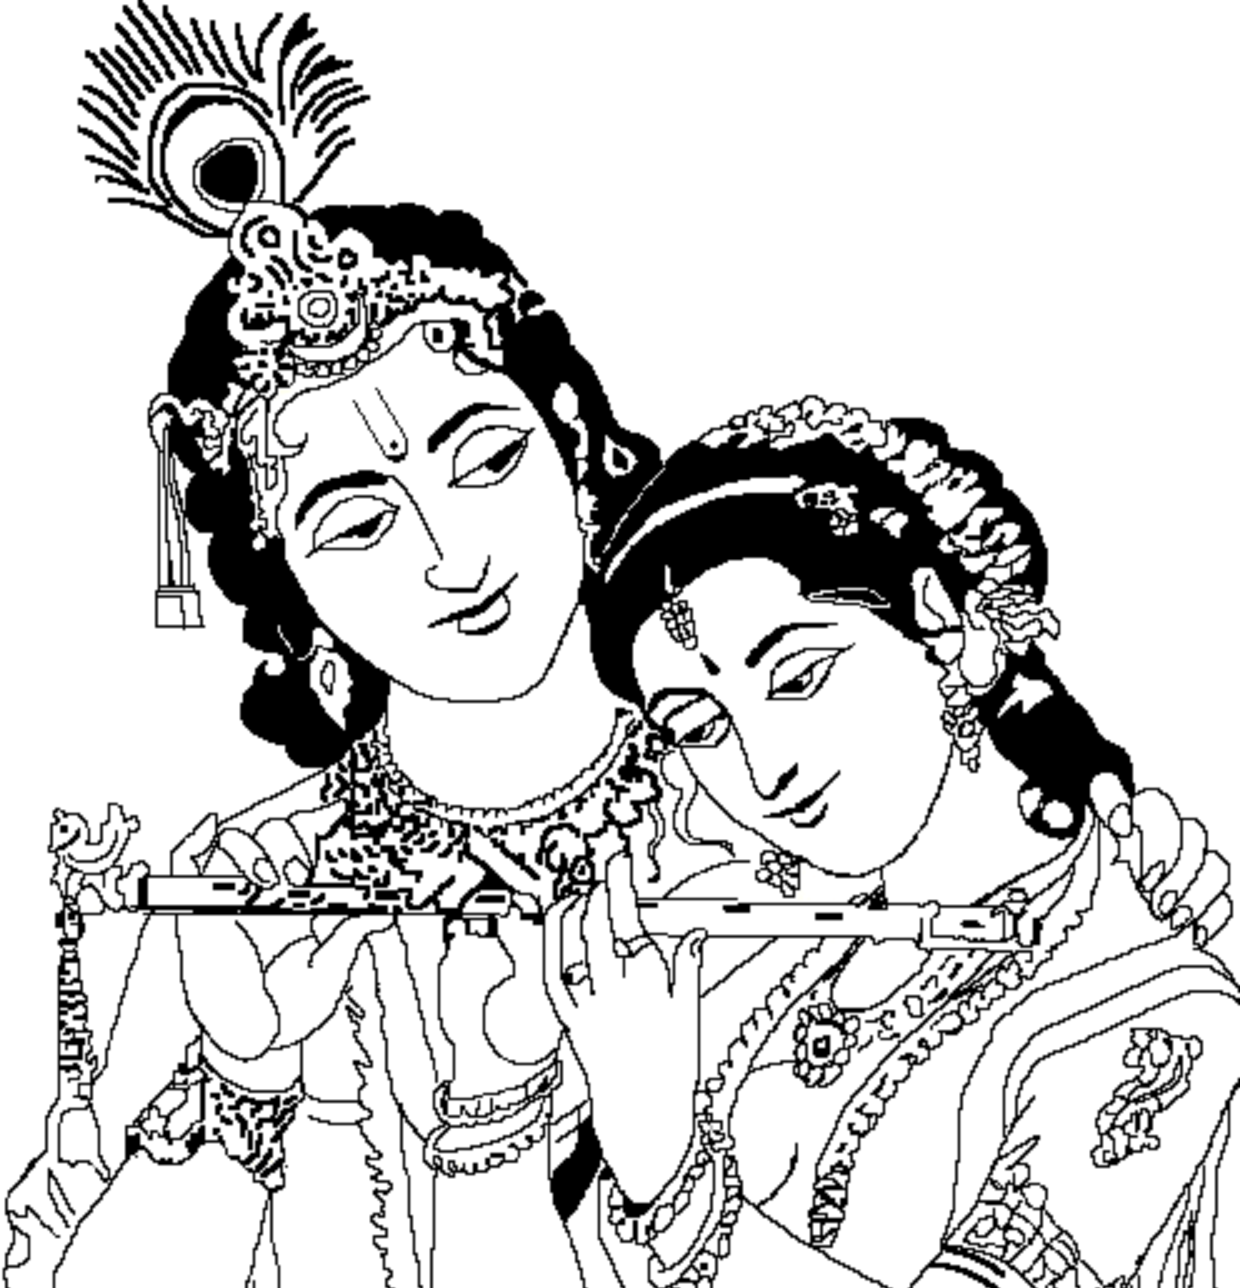 Radha Krishna Black And White Clipart-radha krishna black and white clipart-12